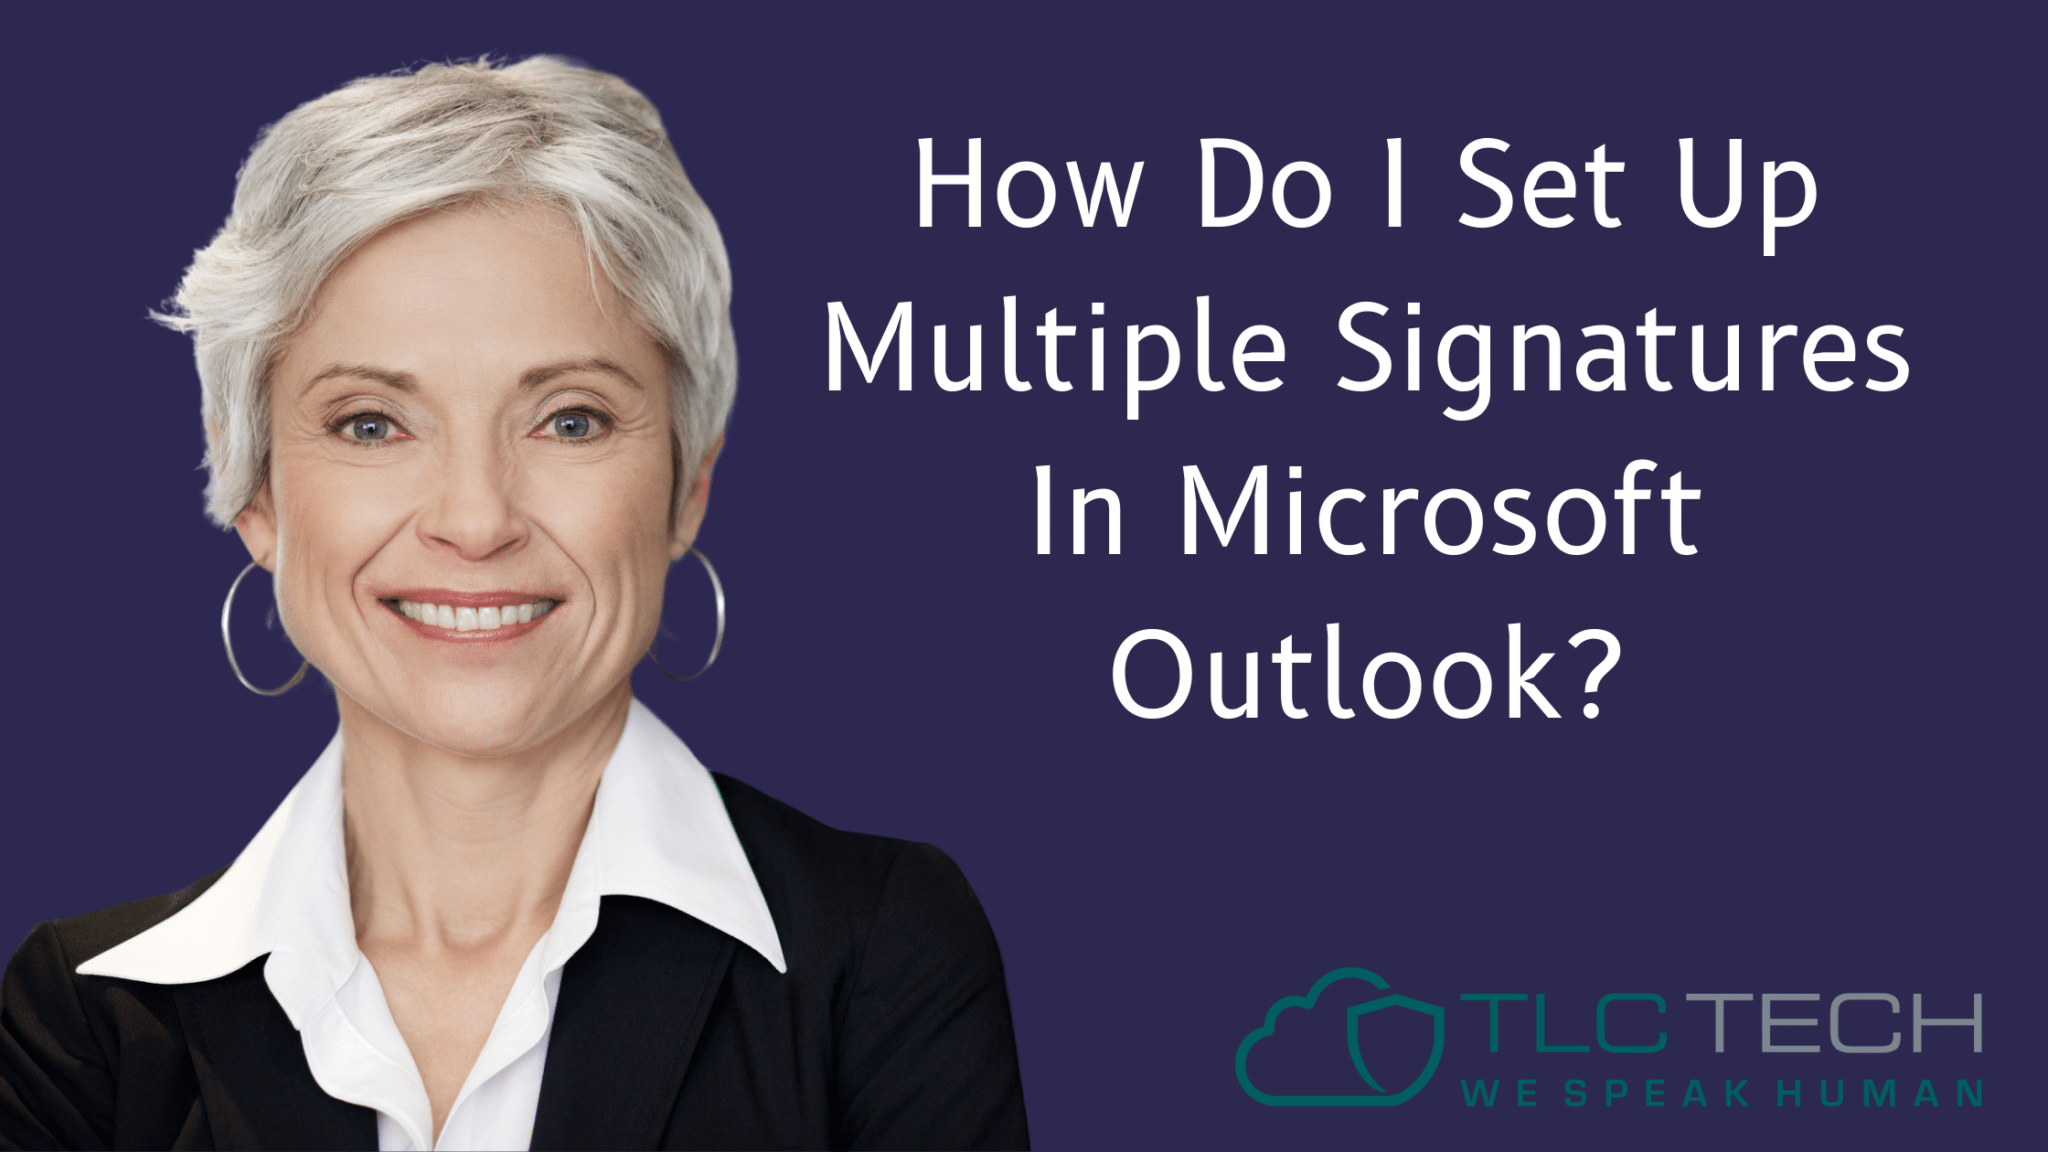 How Do I Set Up Multiple Signatures In Microsoft Outlook?